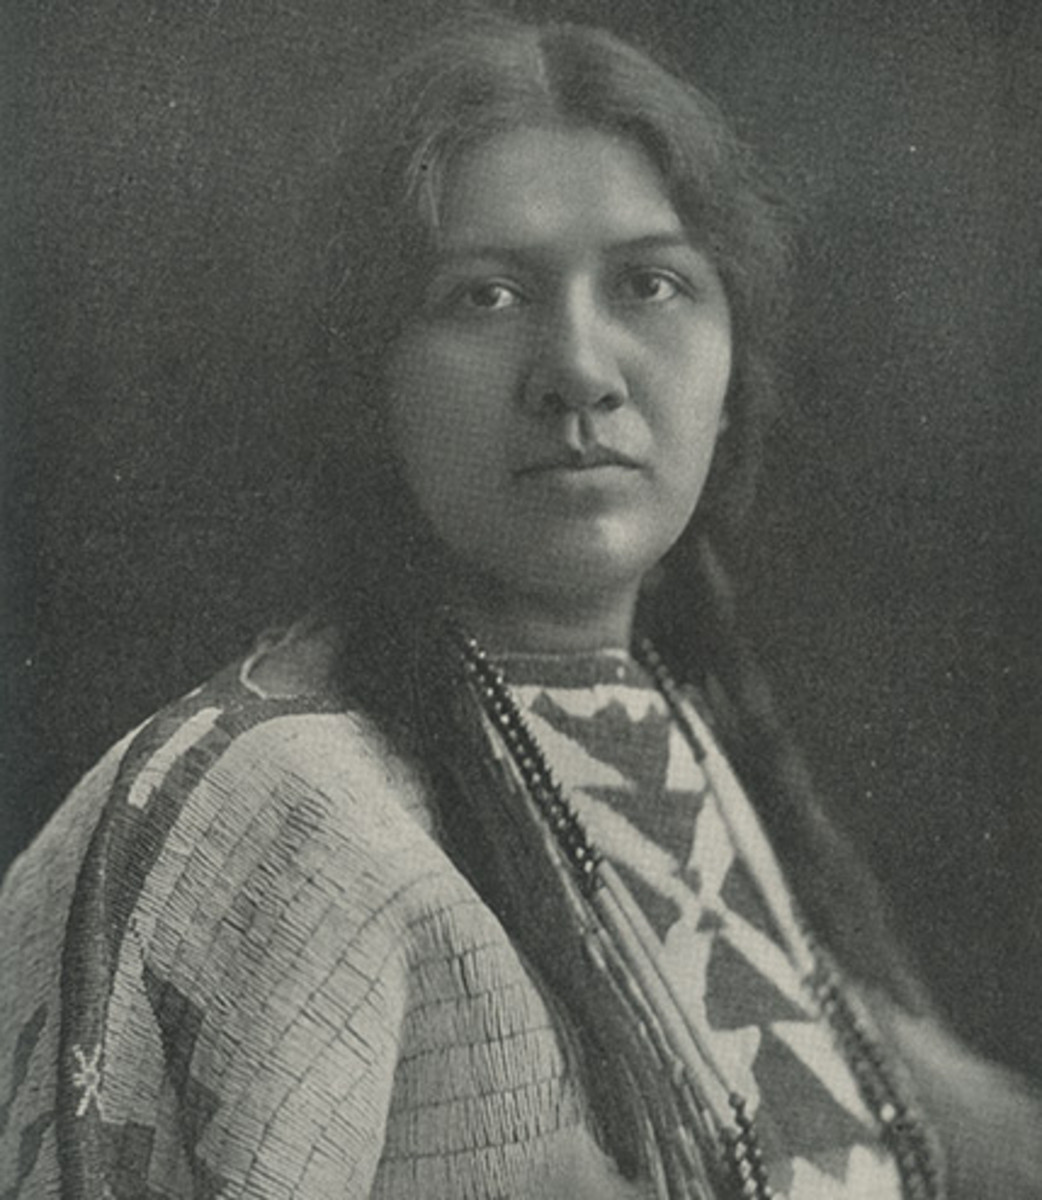 """Angel De Cora is seen here in the portrait that accompanies her essay """"Native Indian Art"""" in Proceedings of the First Conference of the Society of American Indians, 1911. Her buckskin dress is Great Plains-style, not of her own Winnebago culture. (Courtesy Gustave Hensel/Carlisle Indian Industrial School/1907)"""